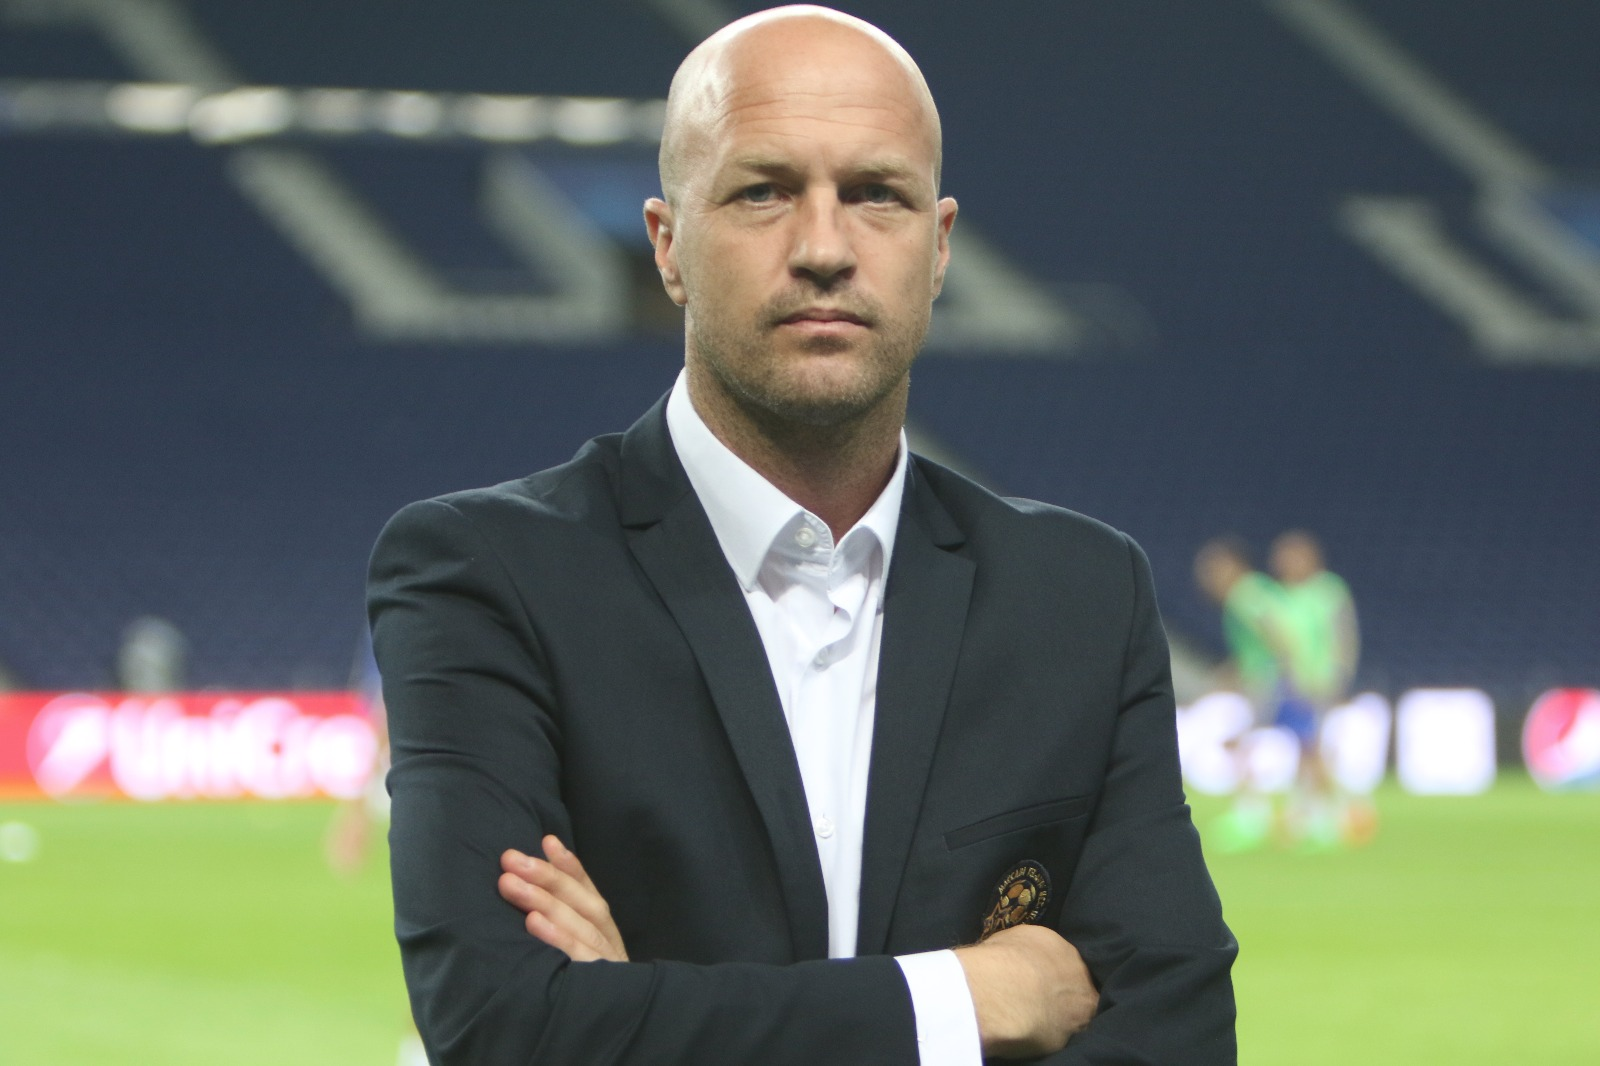 Jordi Cruyff pens first weekly 'Pase Interior' column in El País by discussing Man Utd's rotation policy